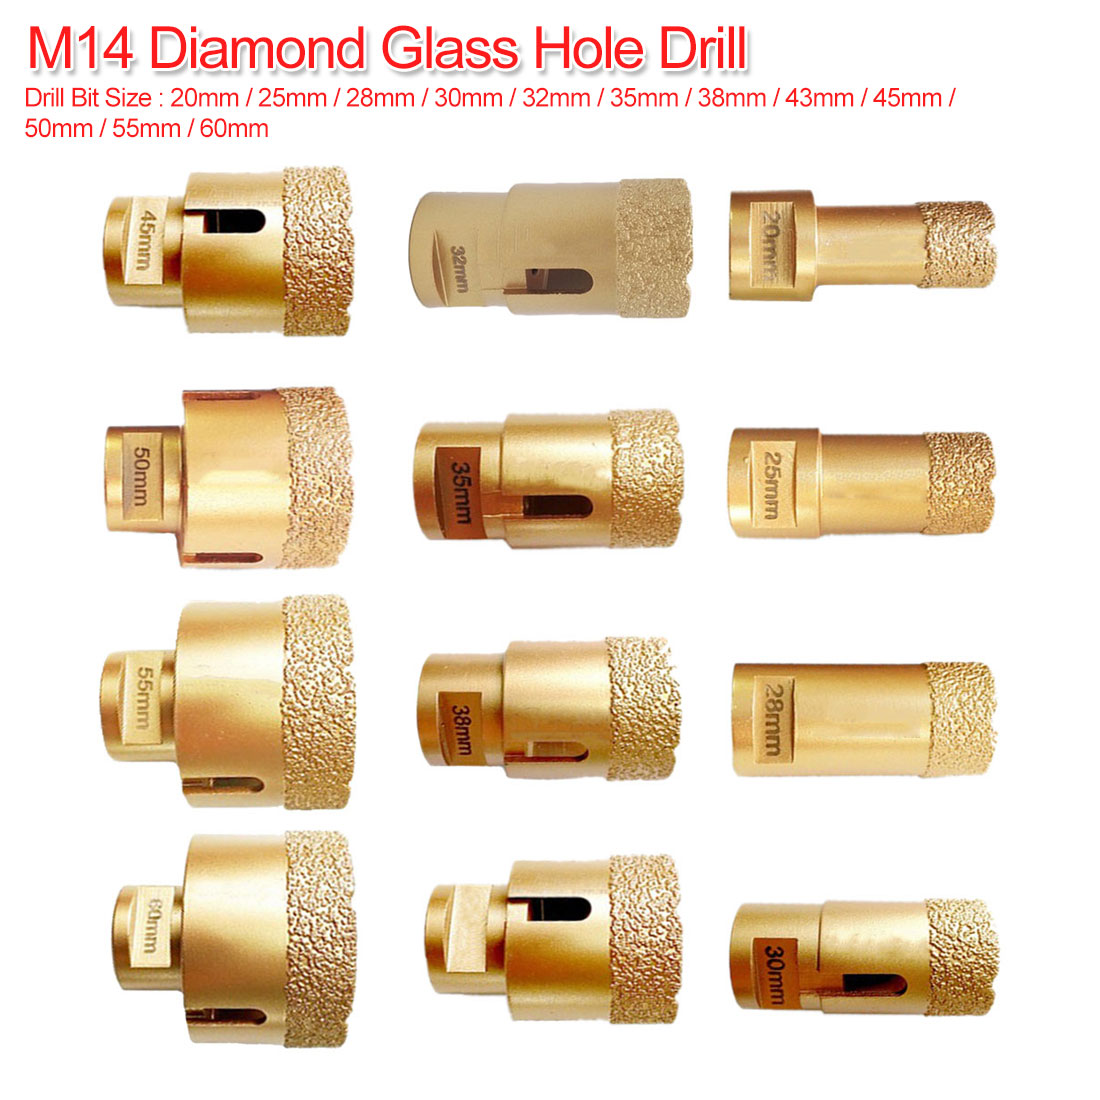 Diamond Vacuum Brazed Drilling Core Bits M14 Connection Drill Bits Hole Saw Diamond Dry/Wet Drilling For Tile Stone 20mm-60mm